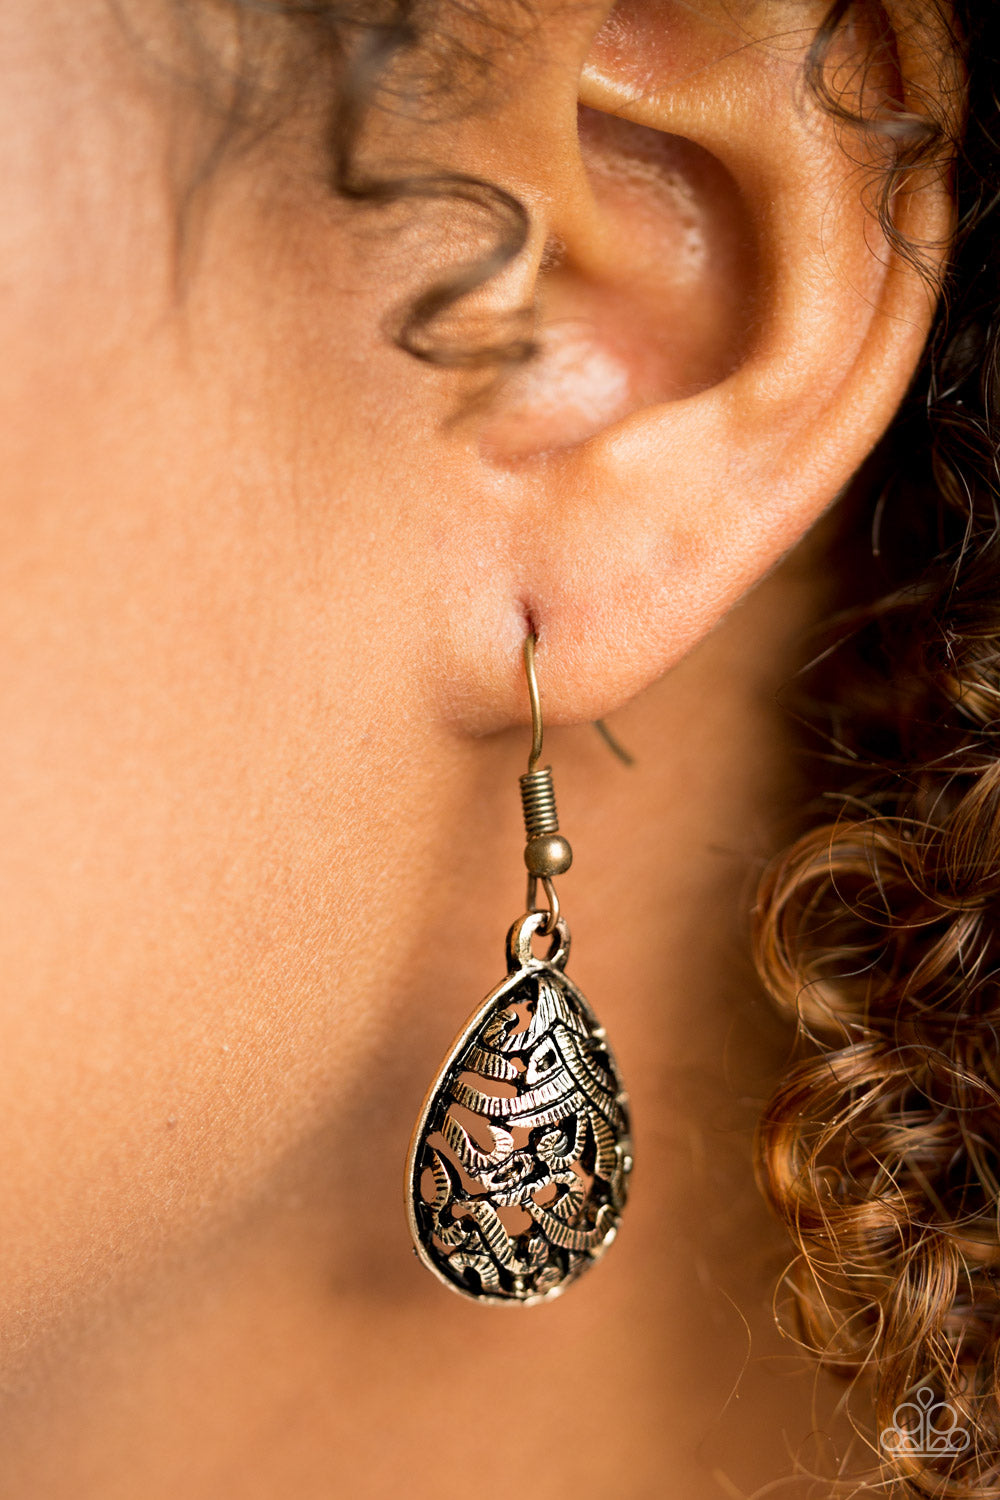 Etched in shimmer, brass vine-like filigree climbs a brass teardrop for a tribal inspired look. Earring attaches to a standard fishhook fitting.  Sold as one pair of earrings.  Always nickel and lead free.